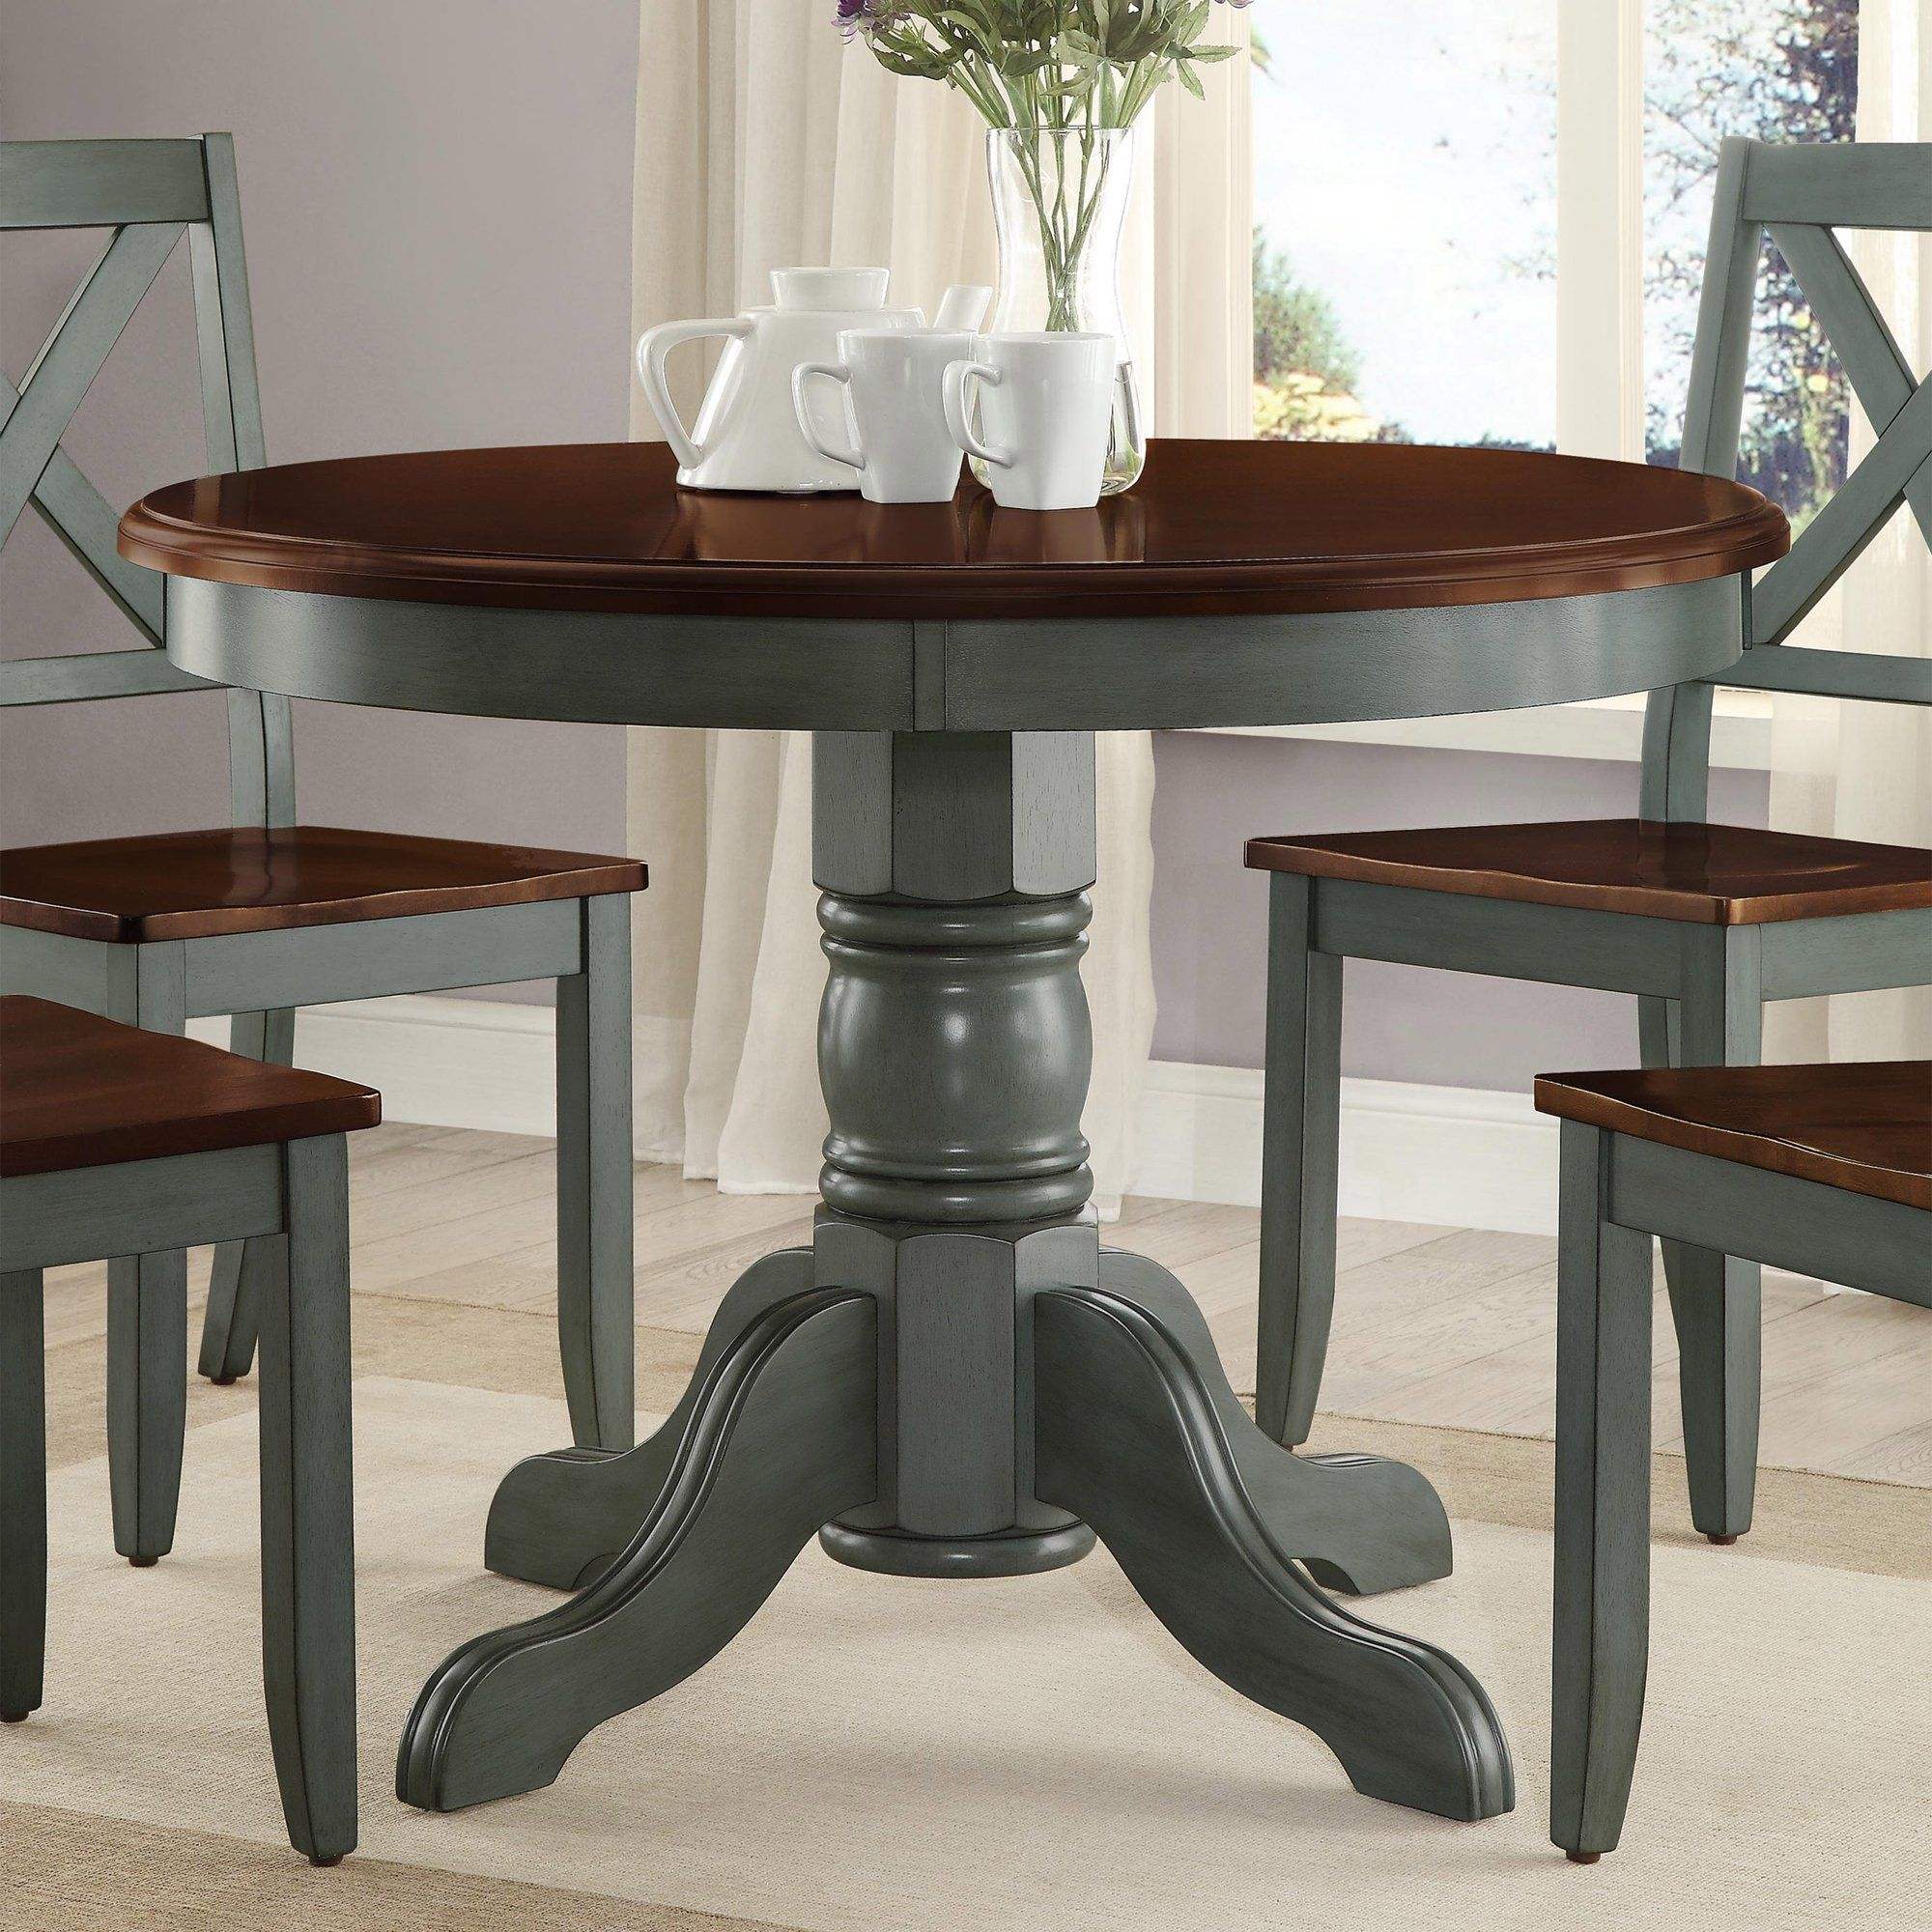 Better Homes And Gardens Cambridge Place Dining Table Multiple Finishes Walmart Com In 2021 Country Kitchen Tables Dining Table Makeover Painted Kitchen Tables